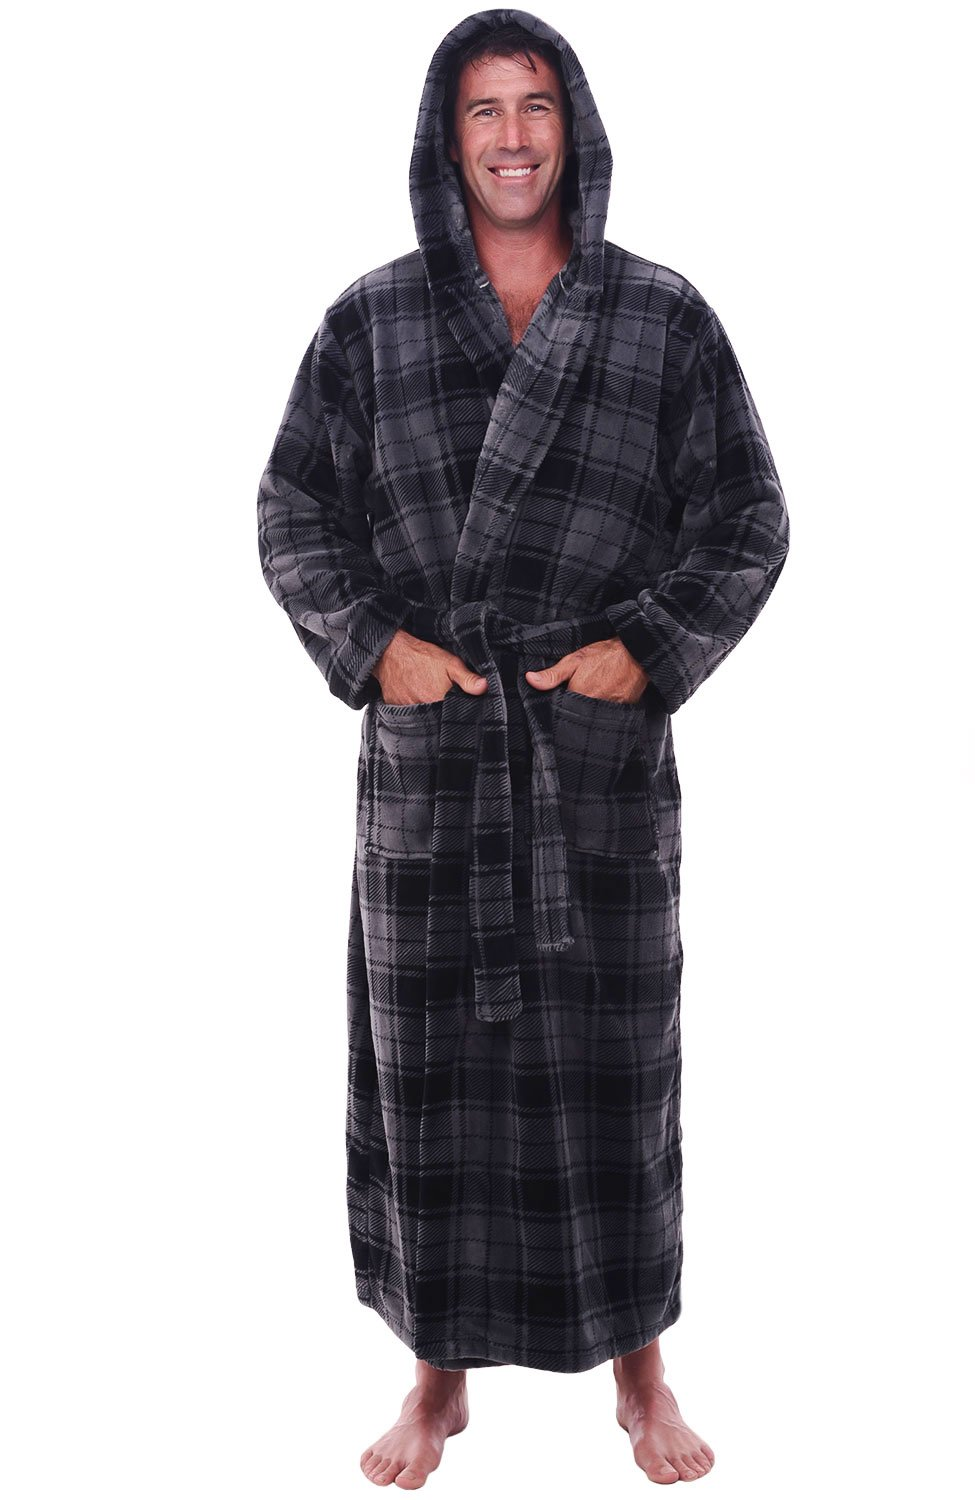 ad1625fc62 Alexander del rossa mens fleece plaid robe long hooded bathrobe product  image jpg 975x1500 Long bath